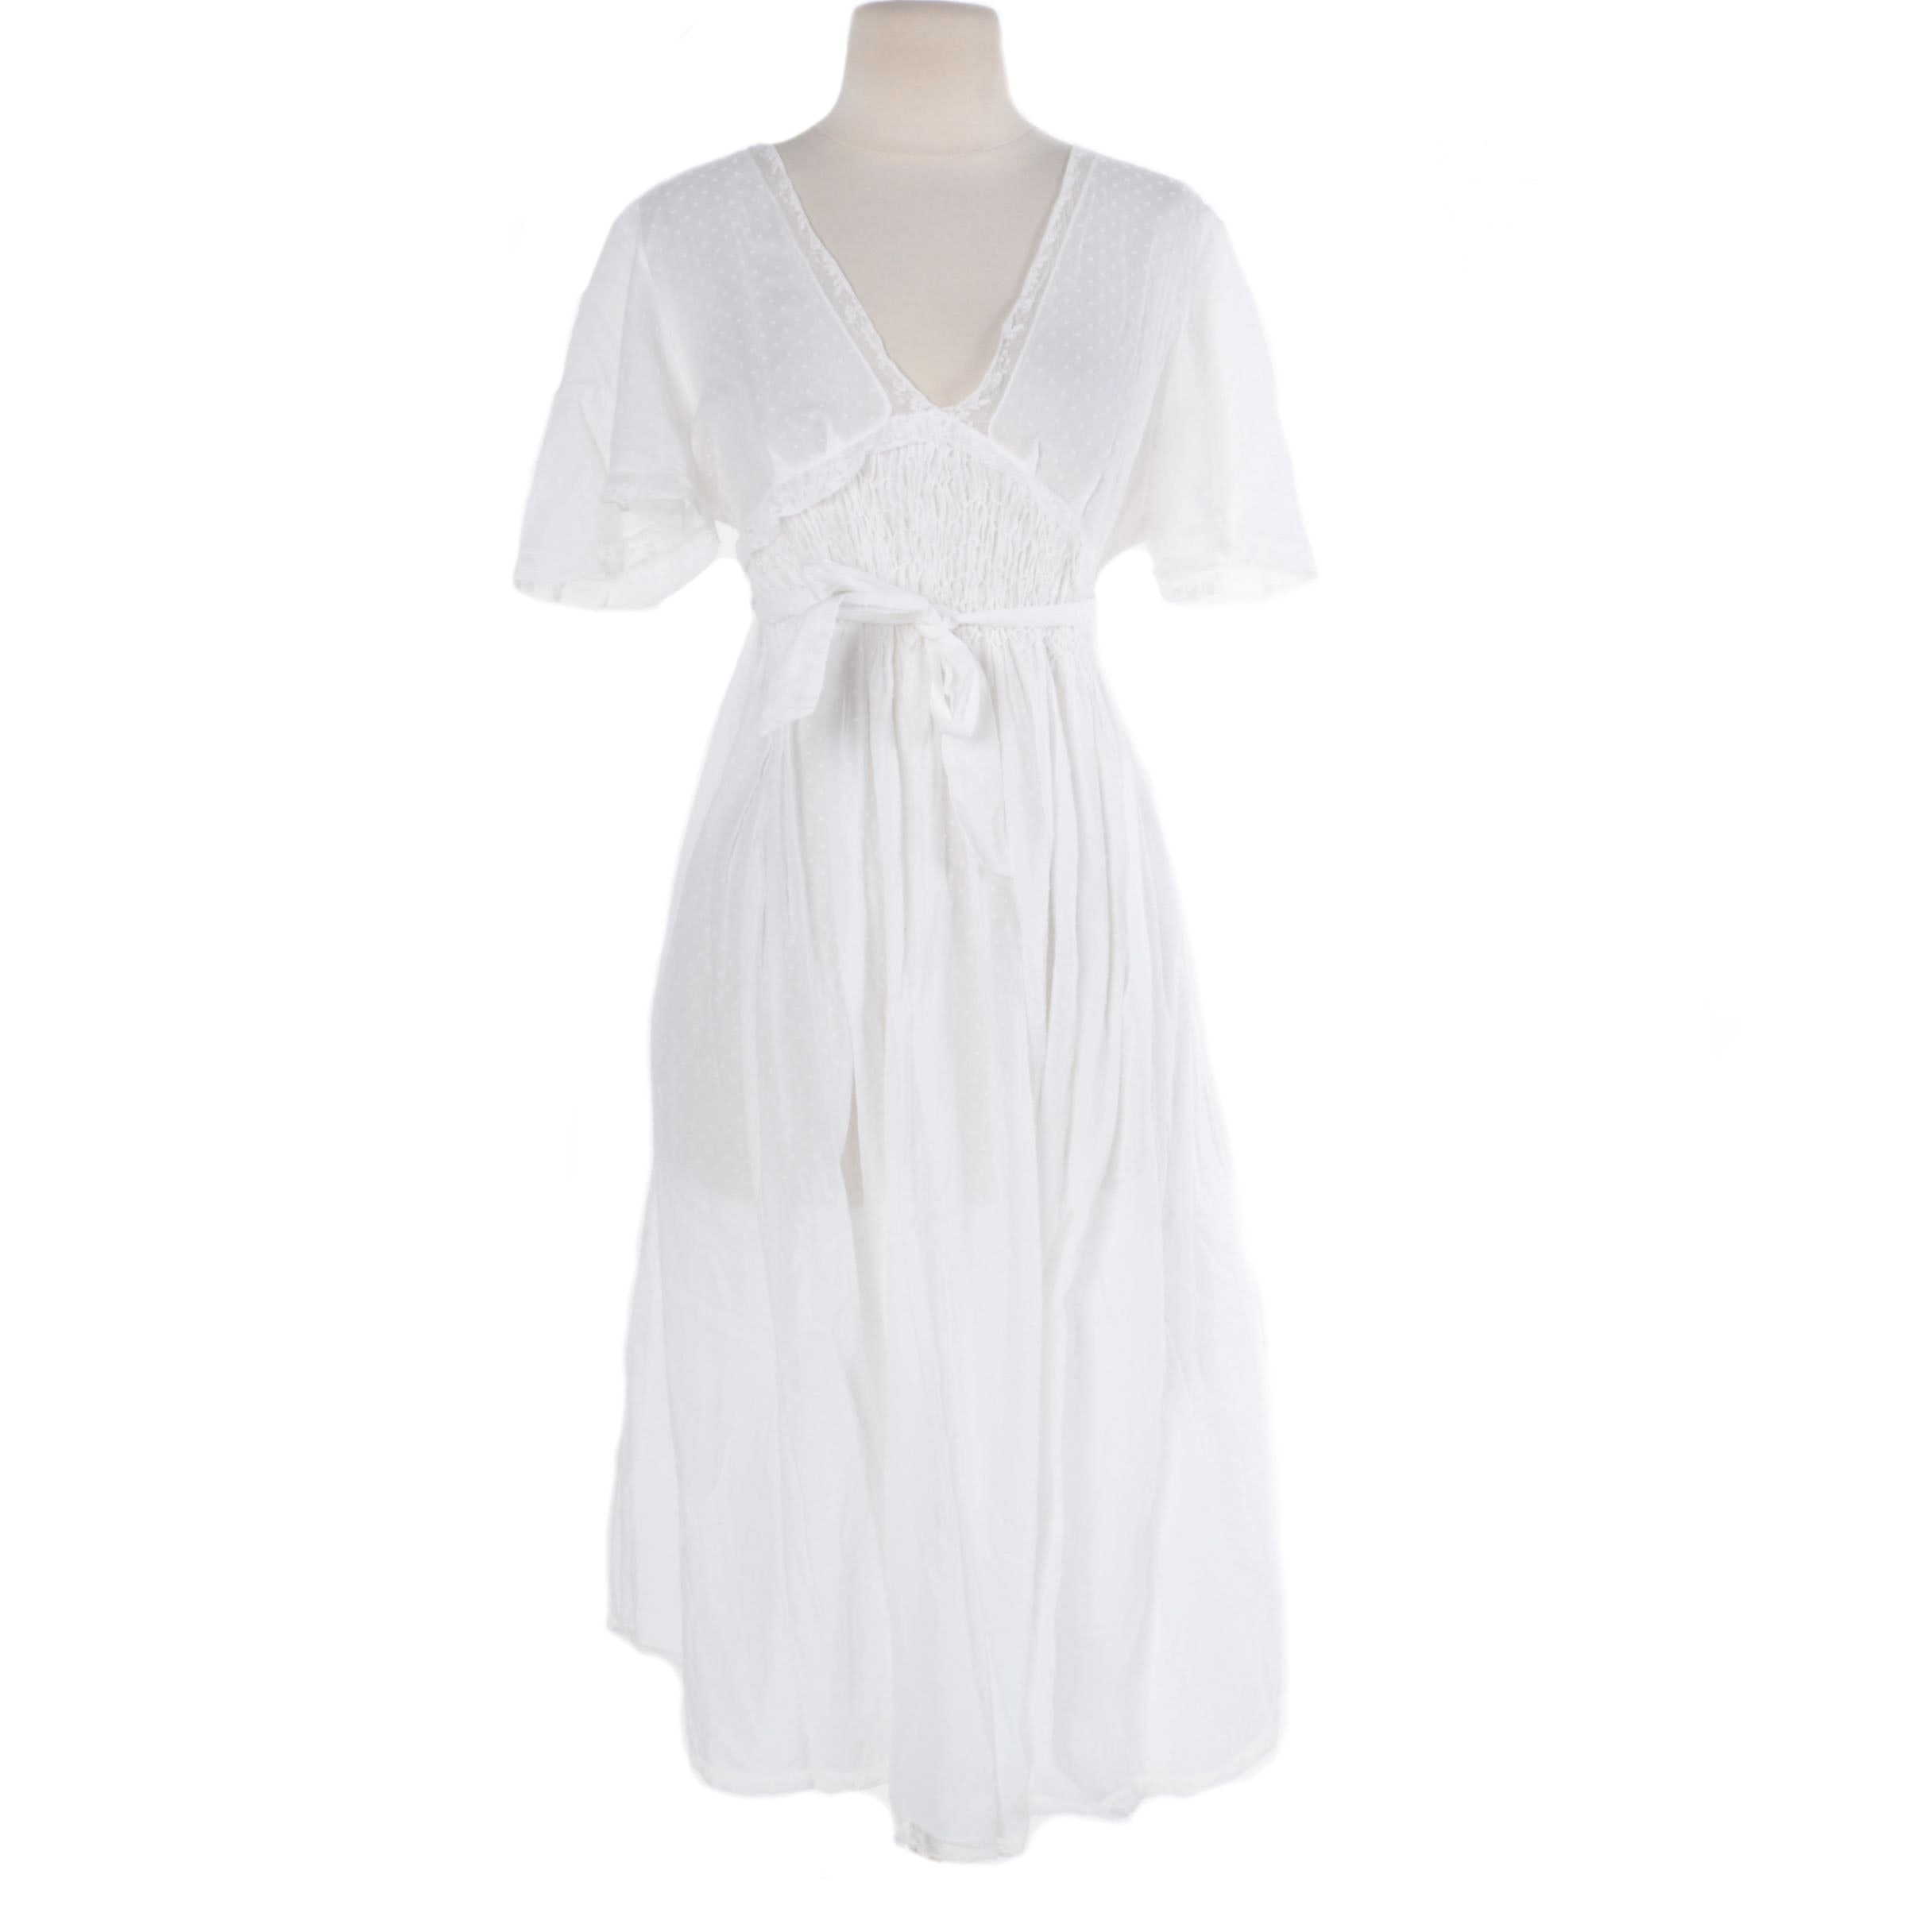 Bergdorf Goodman White Cotton Dress